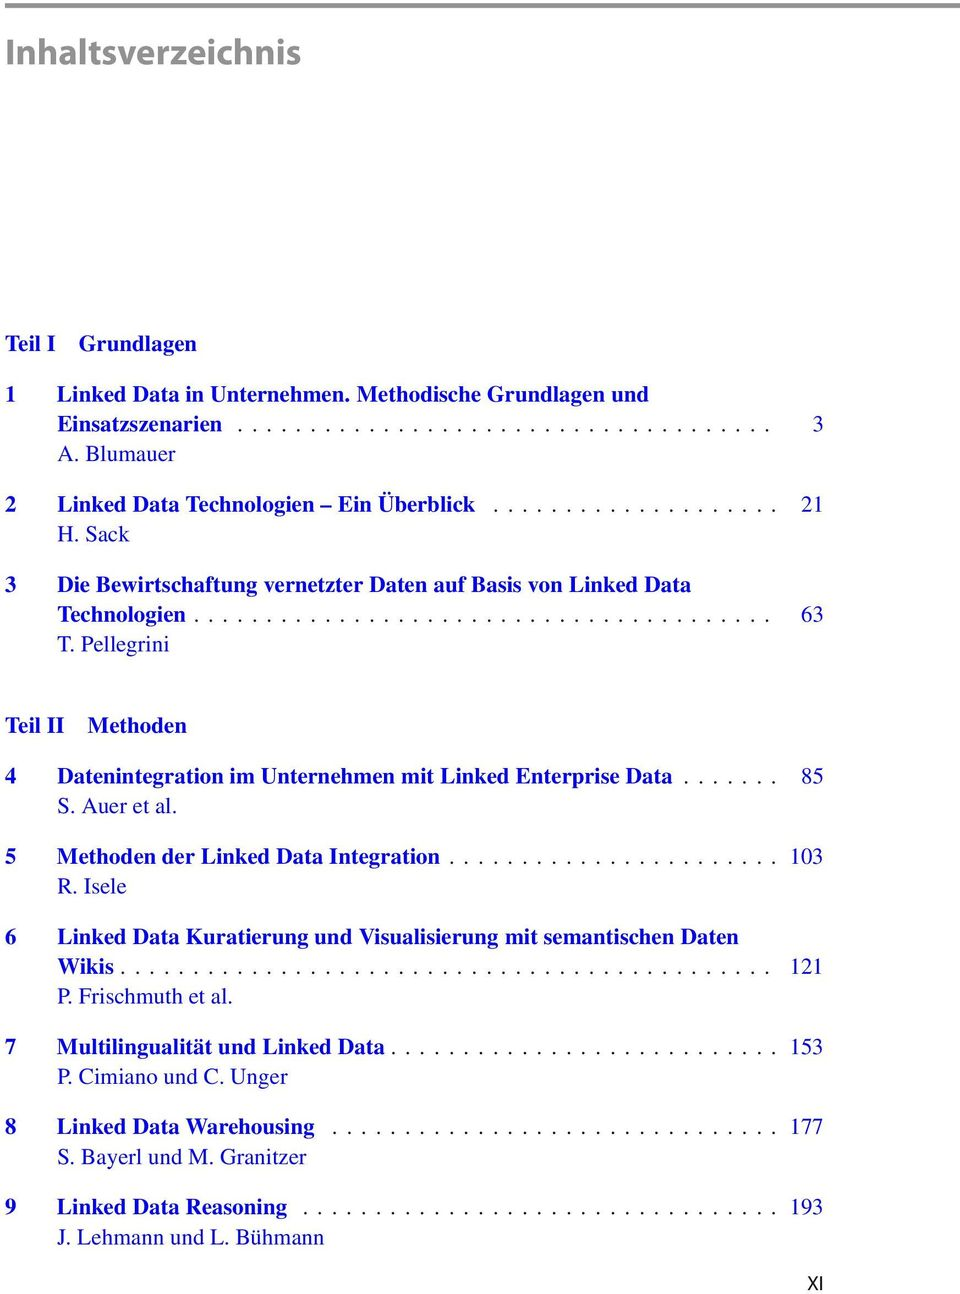 .. 85 S. Auer et al. 5 Methoden der Linked Data Integration... 103 R. Isele 6 Linked Data Kuratierung und Visualisierung mit semantischen Daten Wikis... 121 P. Frischmuth et al.